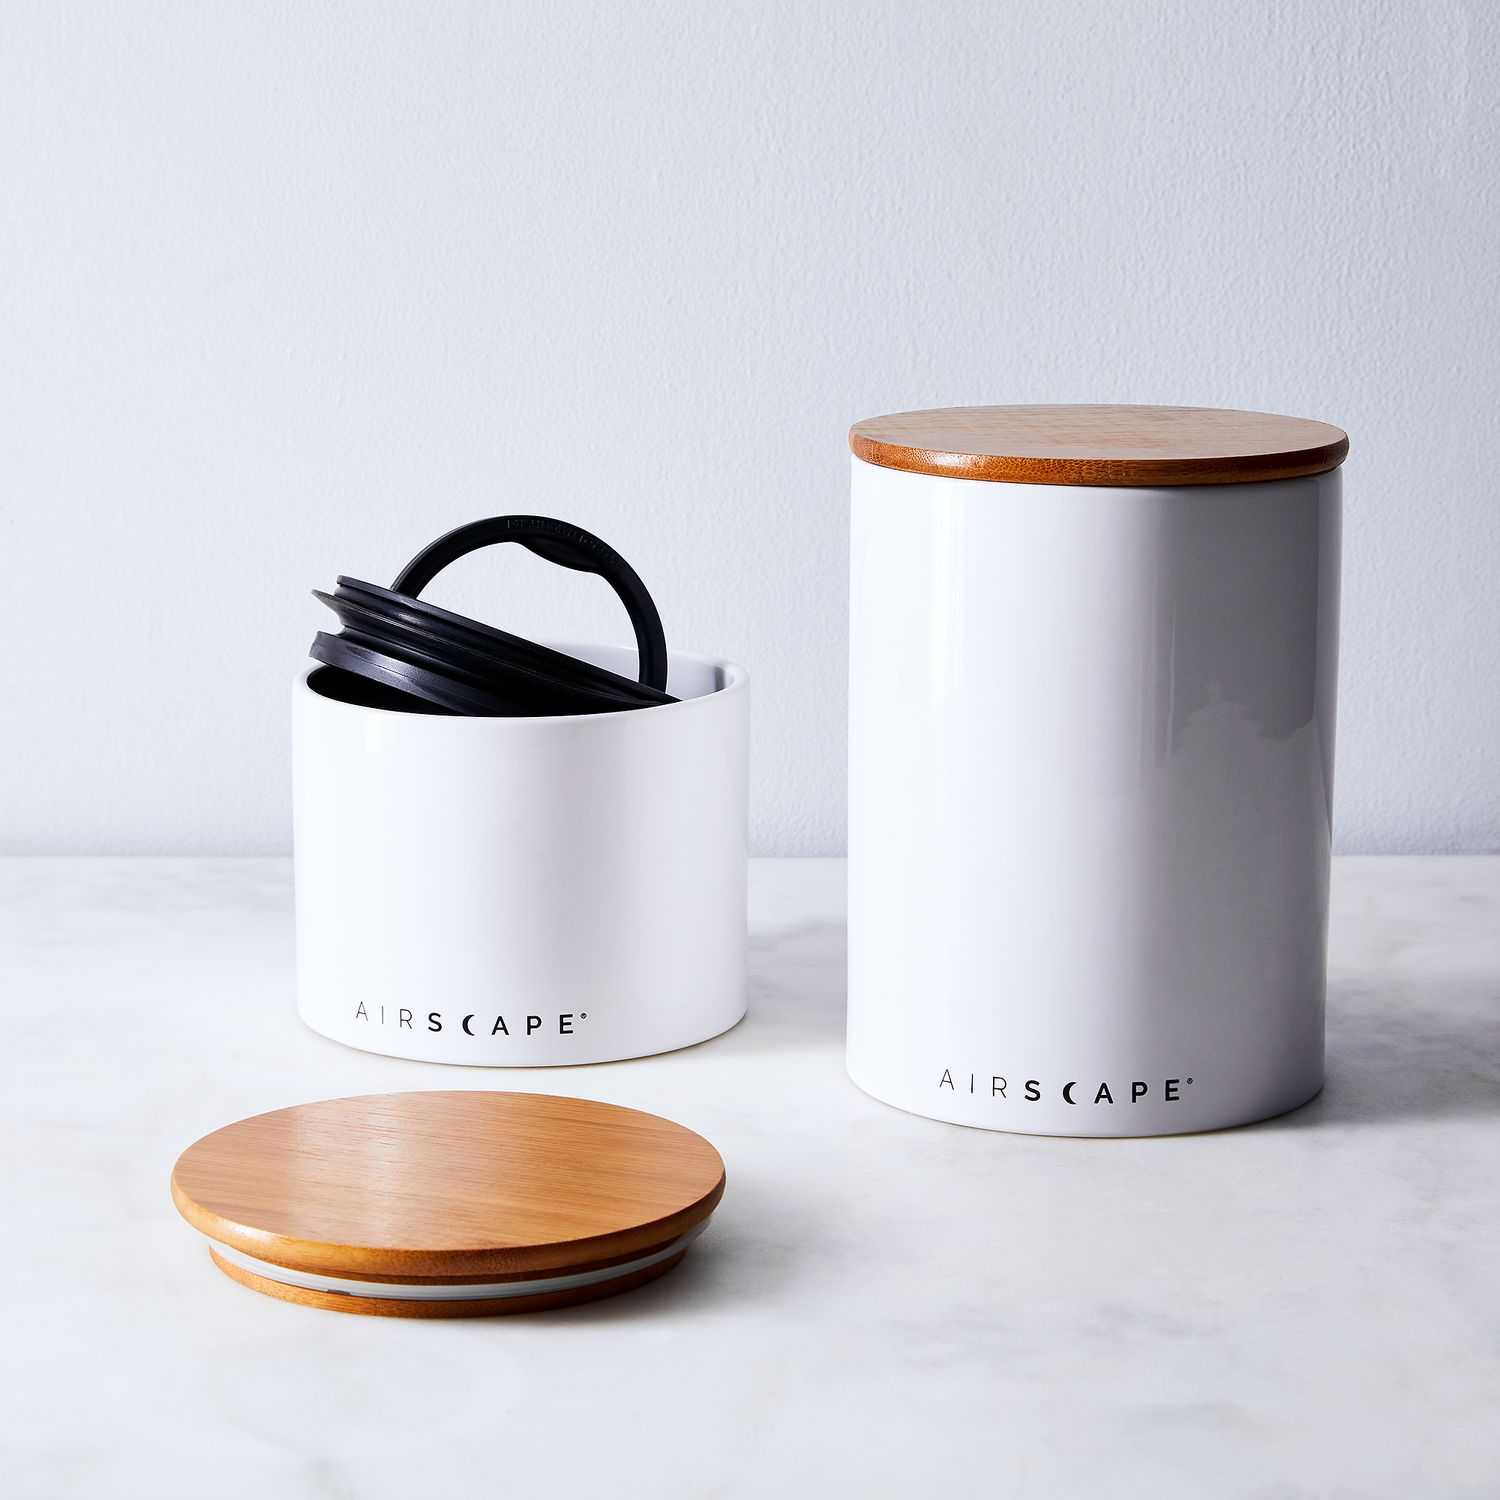 Airscape Ceramic Canisters